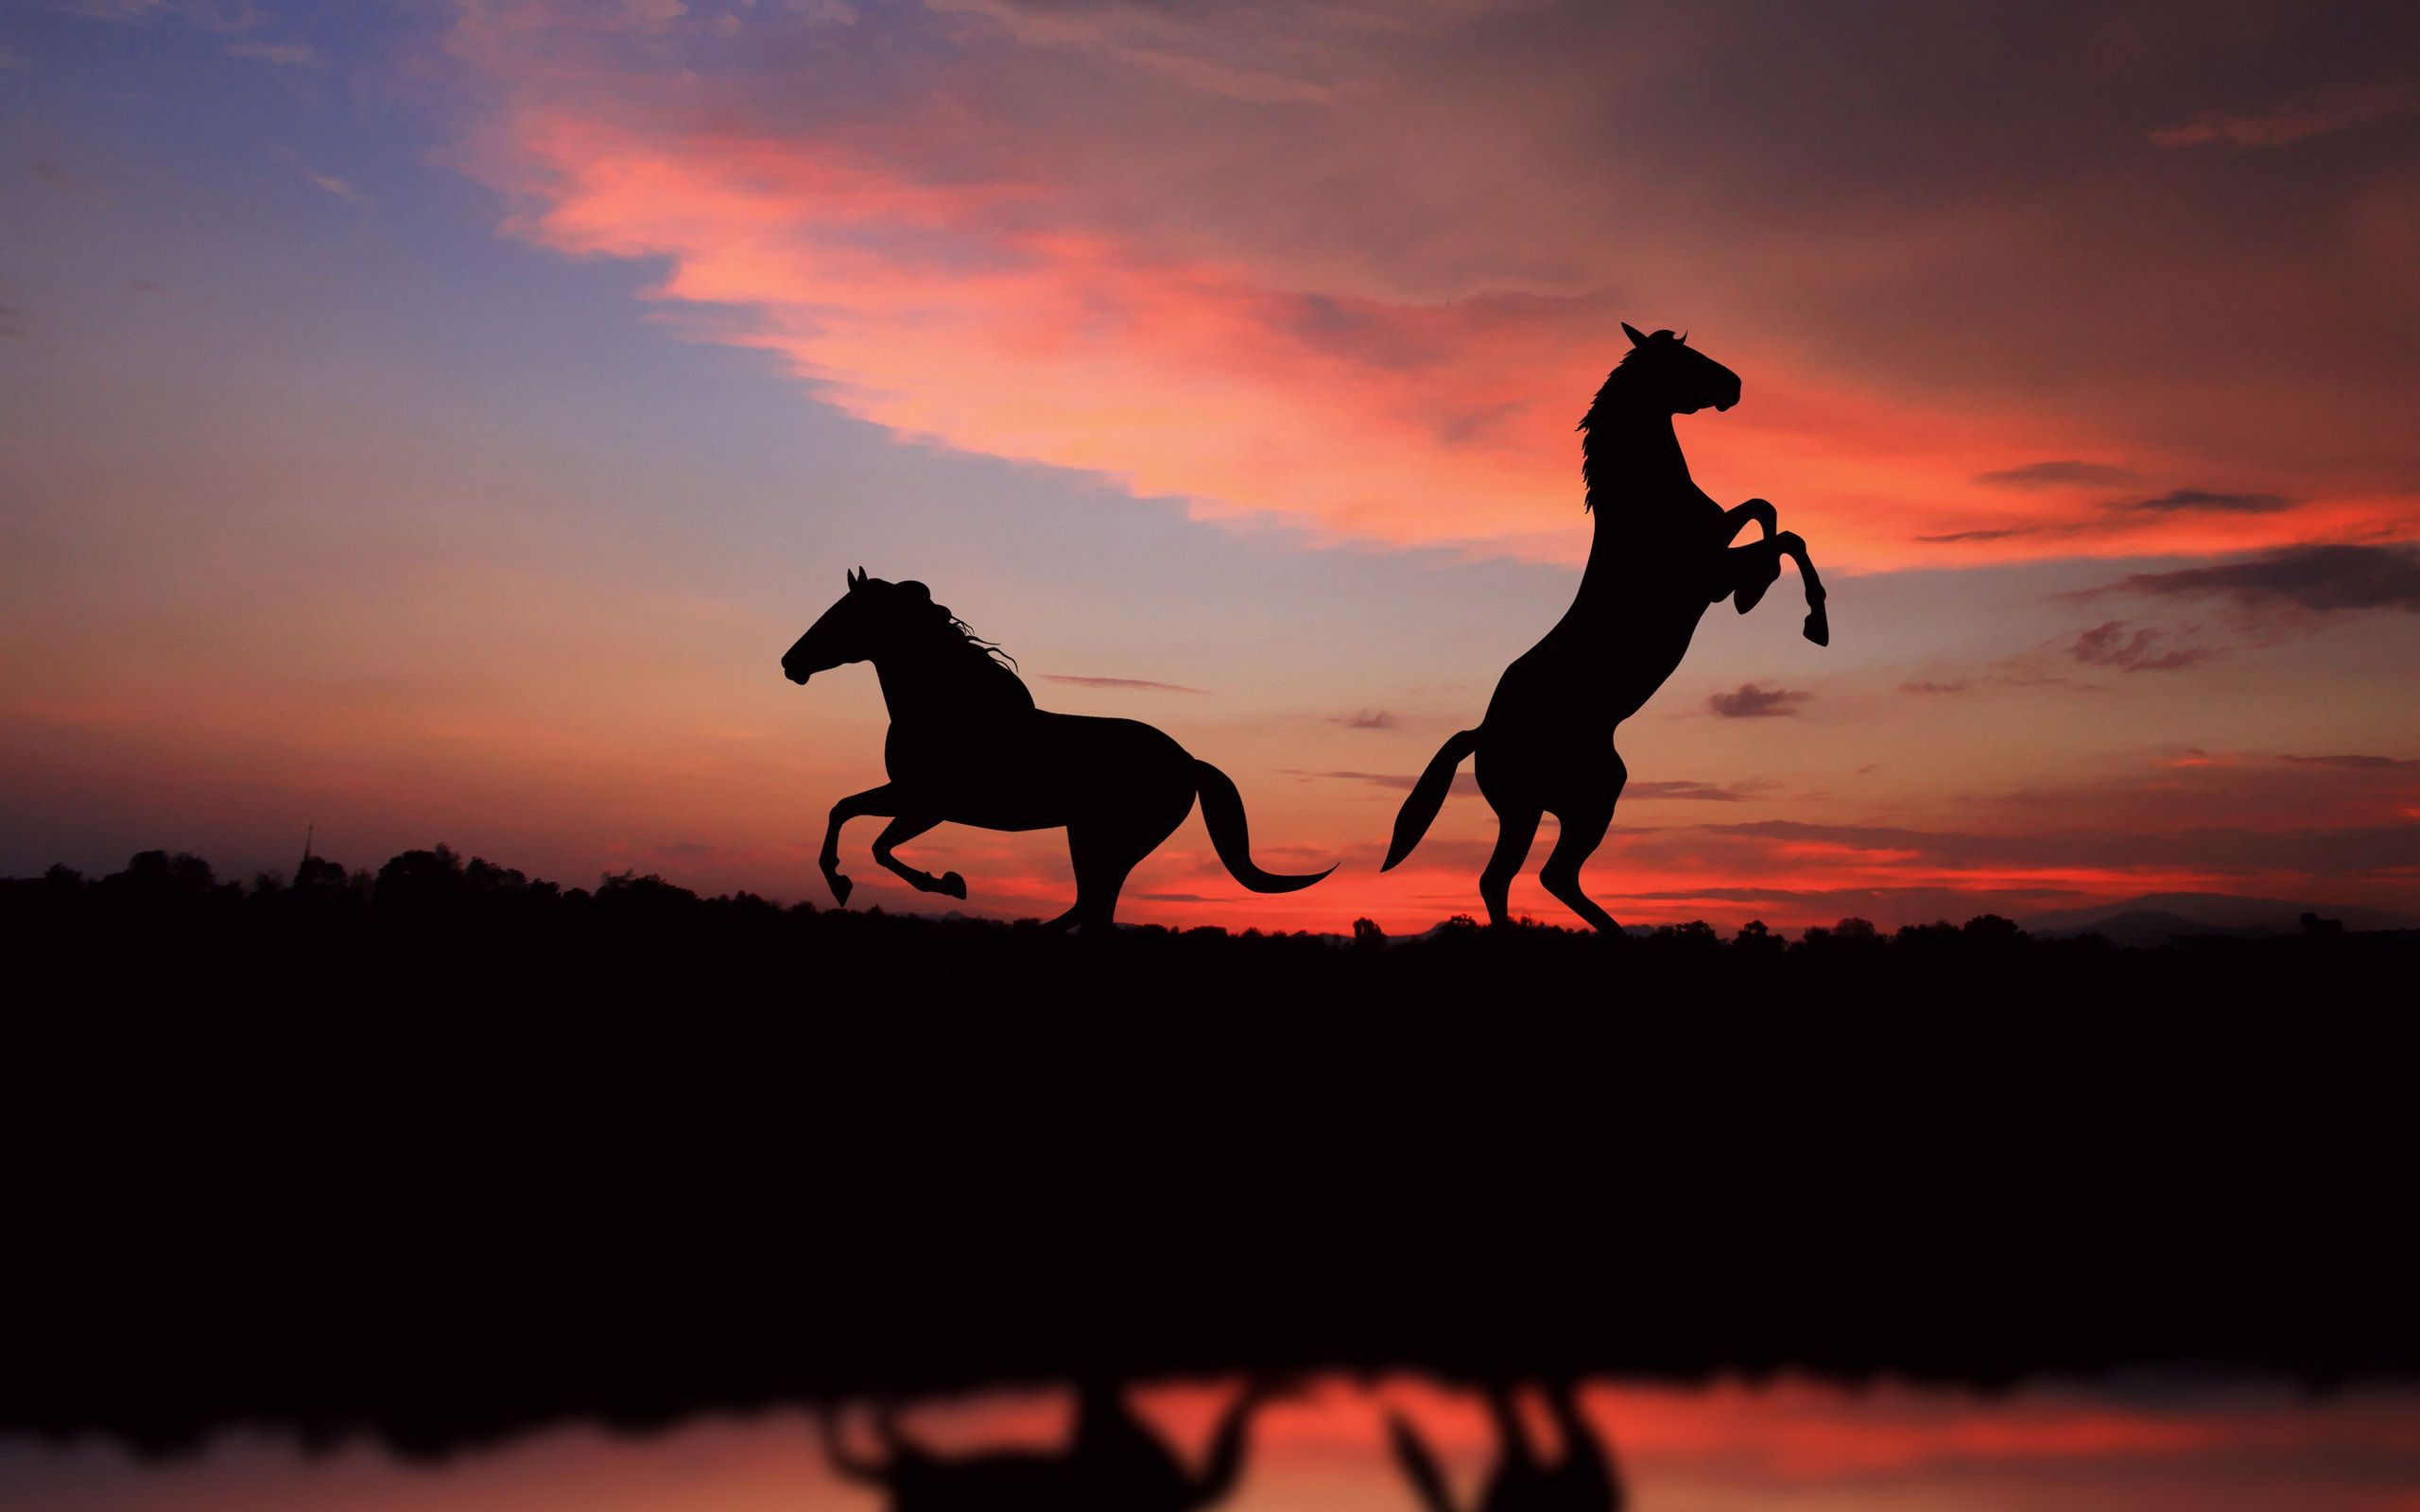 Horse Sunset Wallpaper Full Hd Horse Wallpaper Horses Horse Silhouette